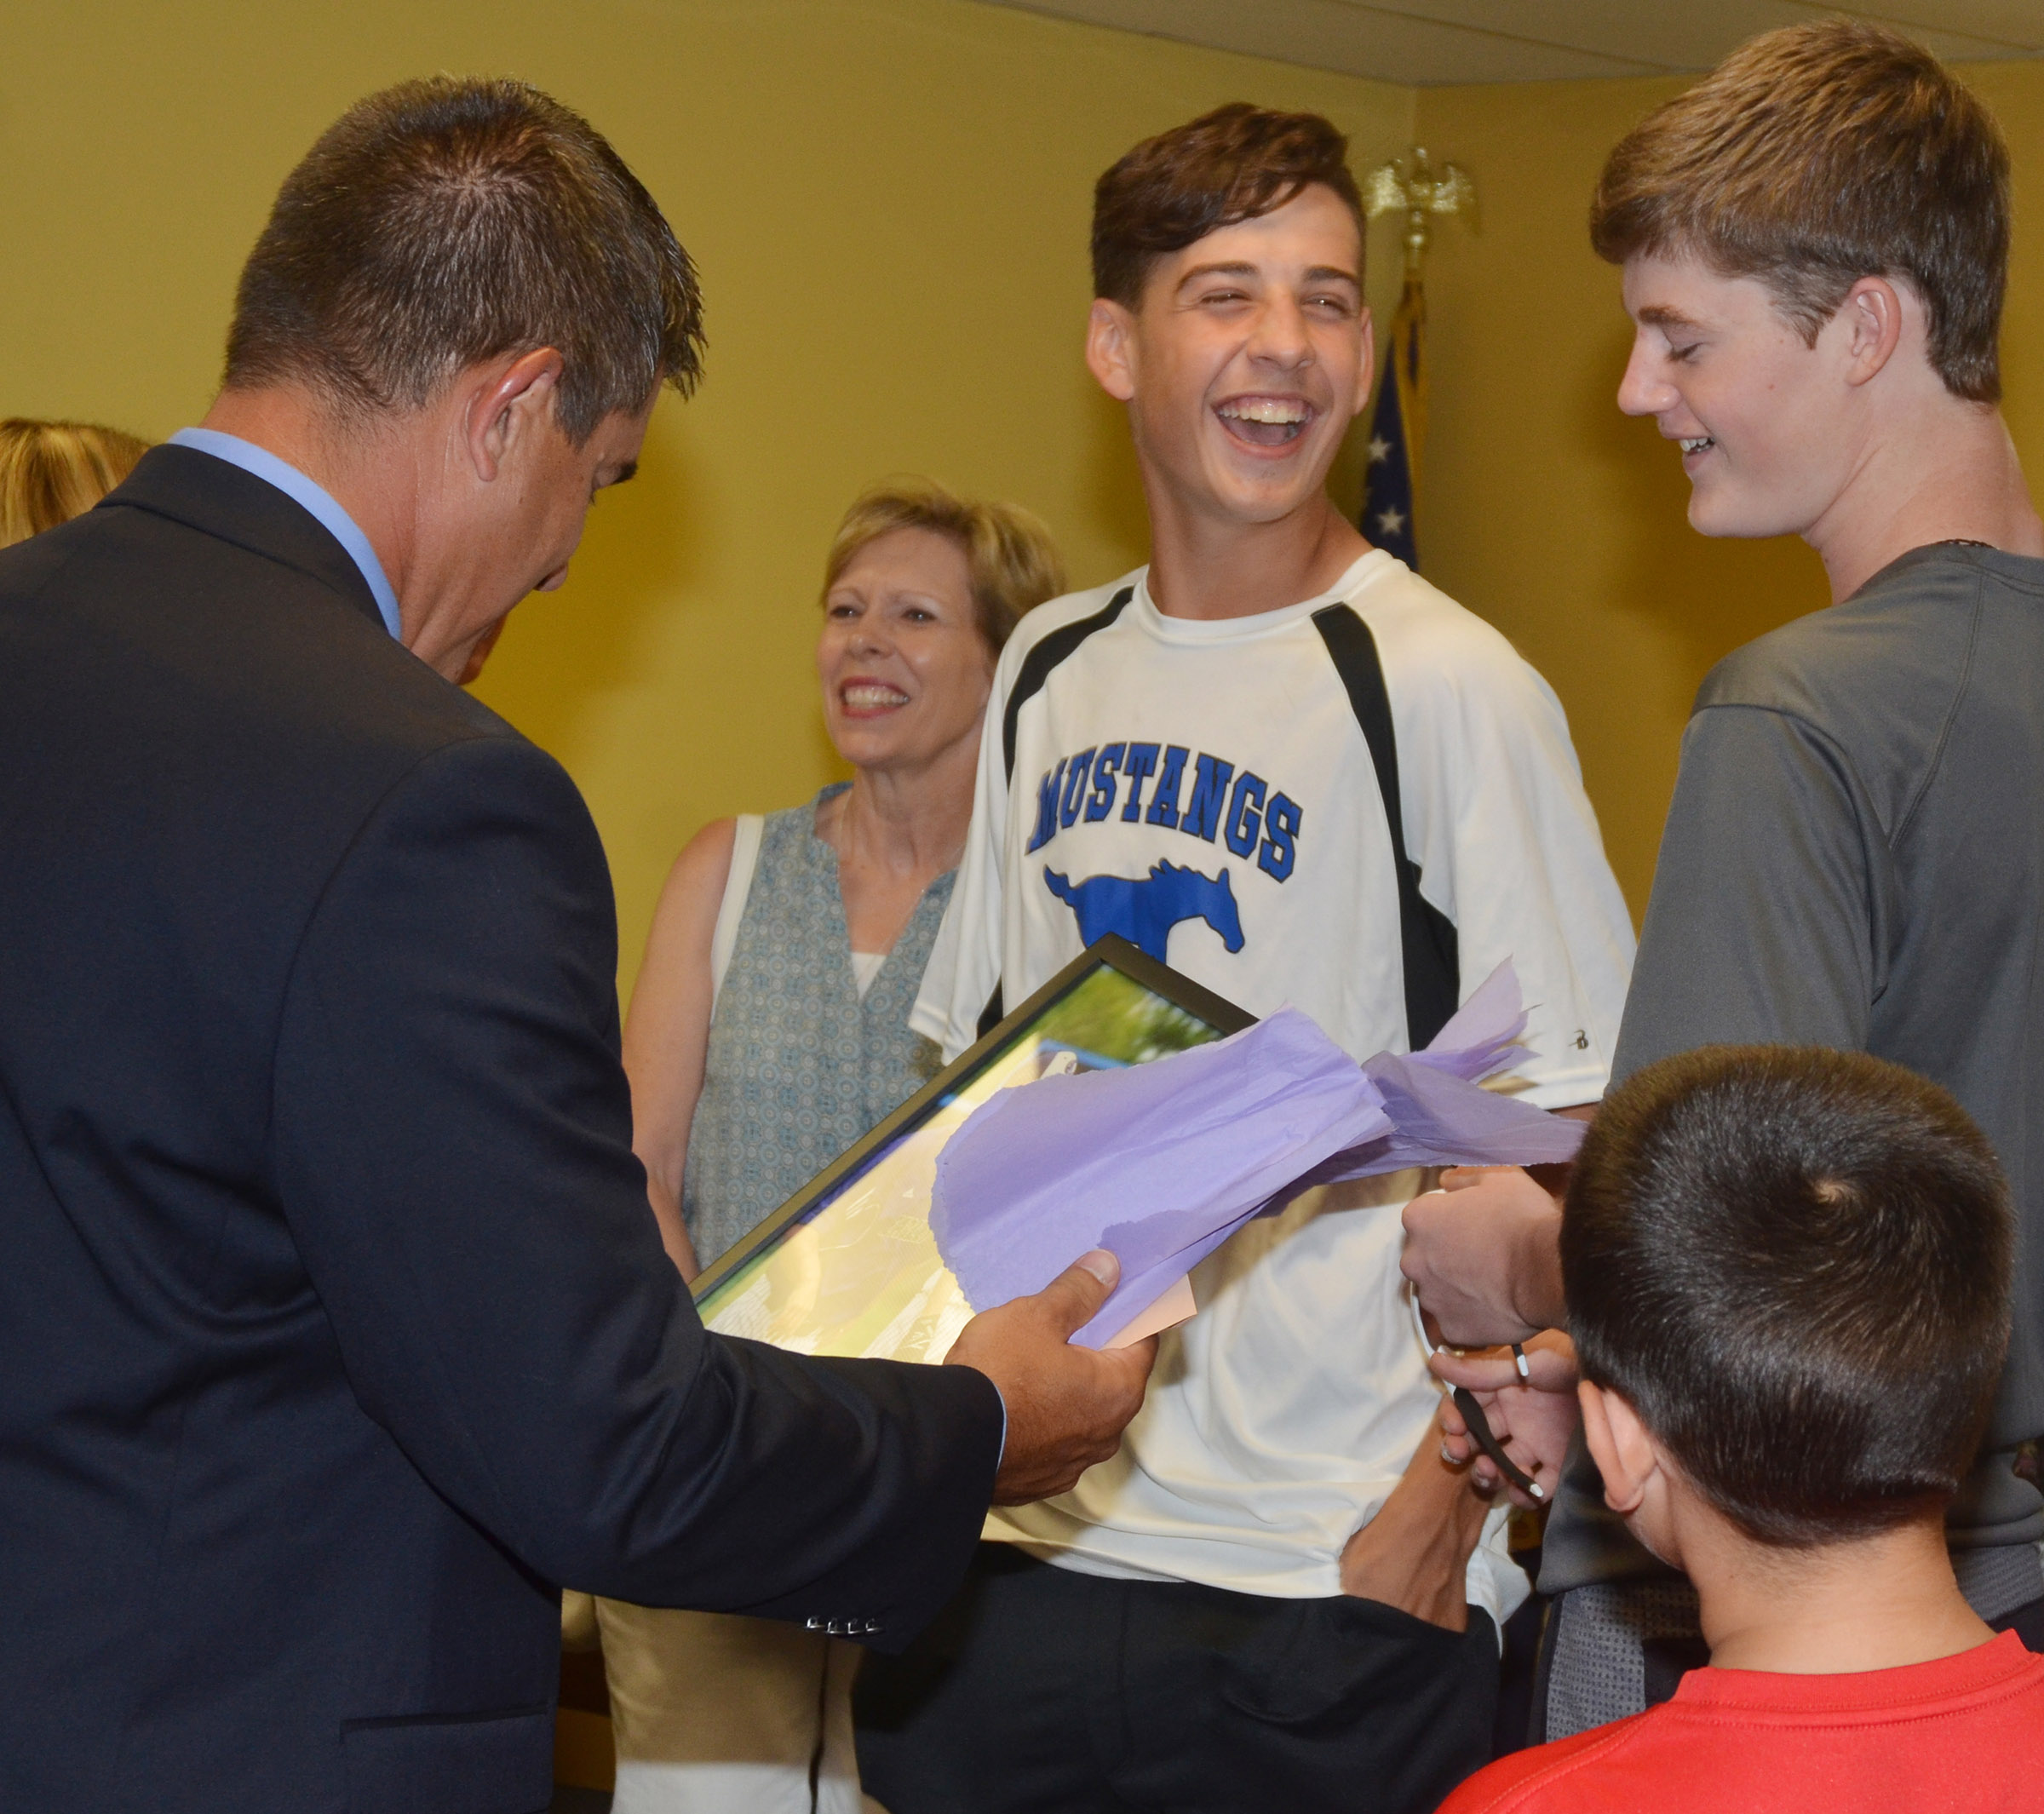 CHS freshmen John Orberson, center, and Tristin Faulkner talk with their former baseball coach, Kirby Smith, who is now superintendent. Orberson gave Smith a photo taken of the two of them during a game.